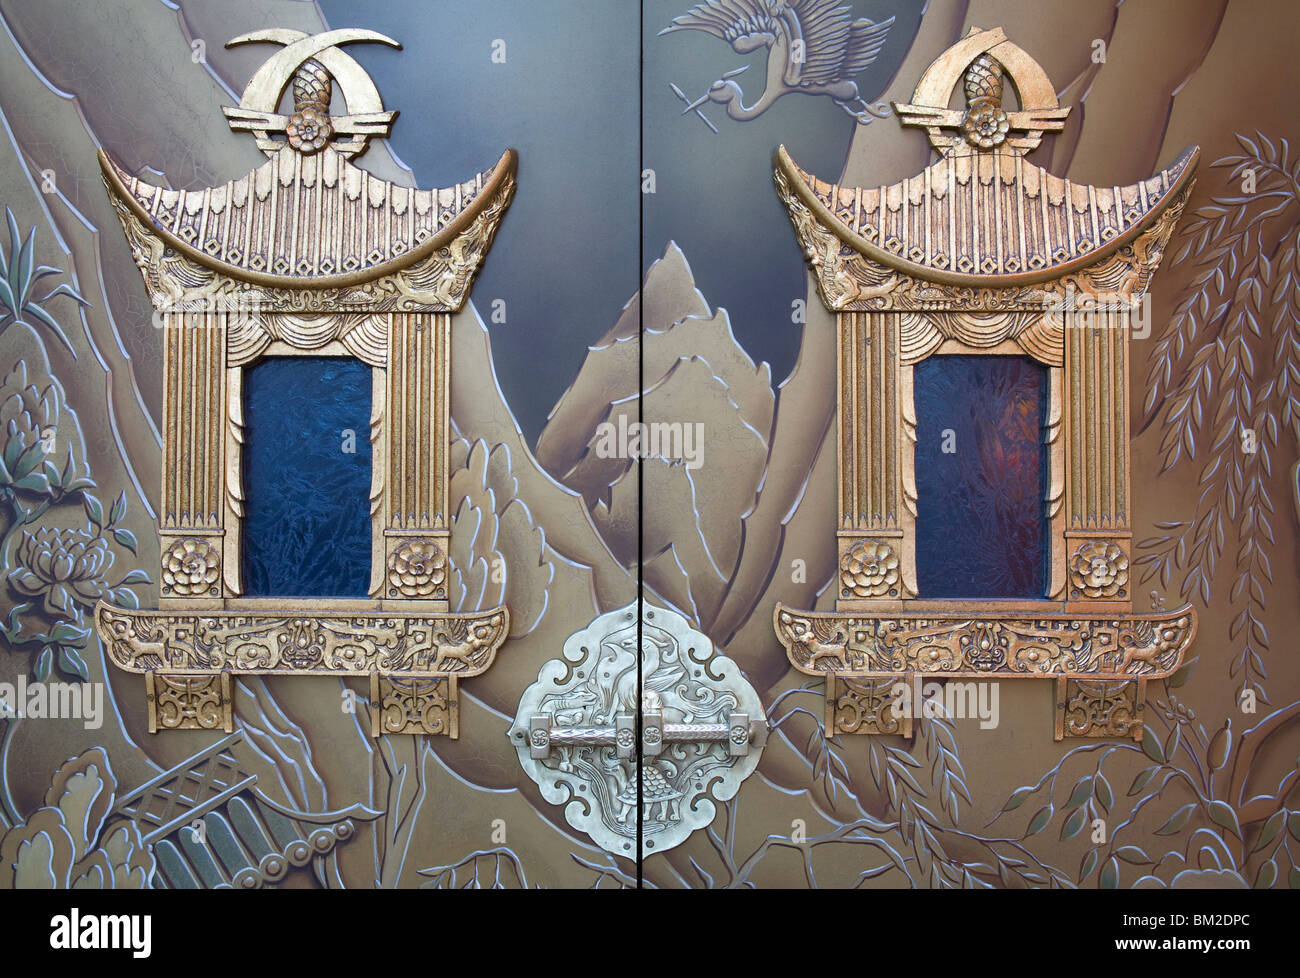 Door detail of Grauman's Chinese Theater, Hollywood Boulevard, Hollywood, California, USA - Stock Image